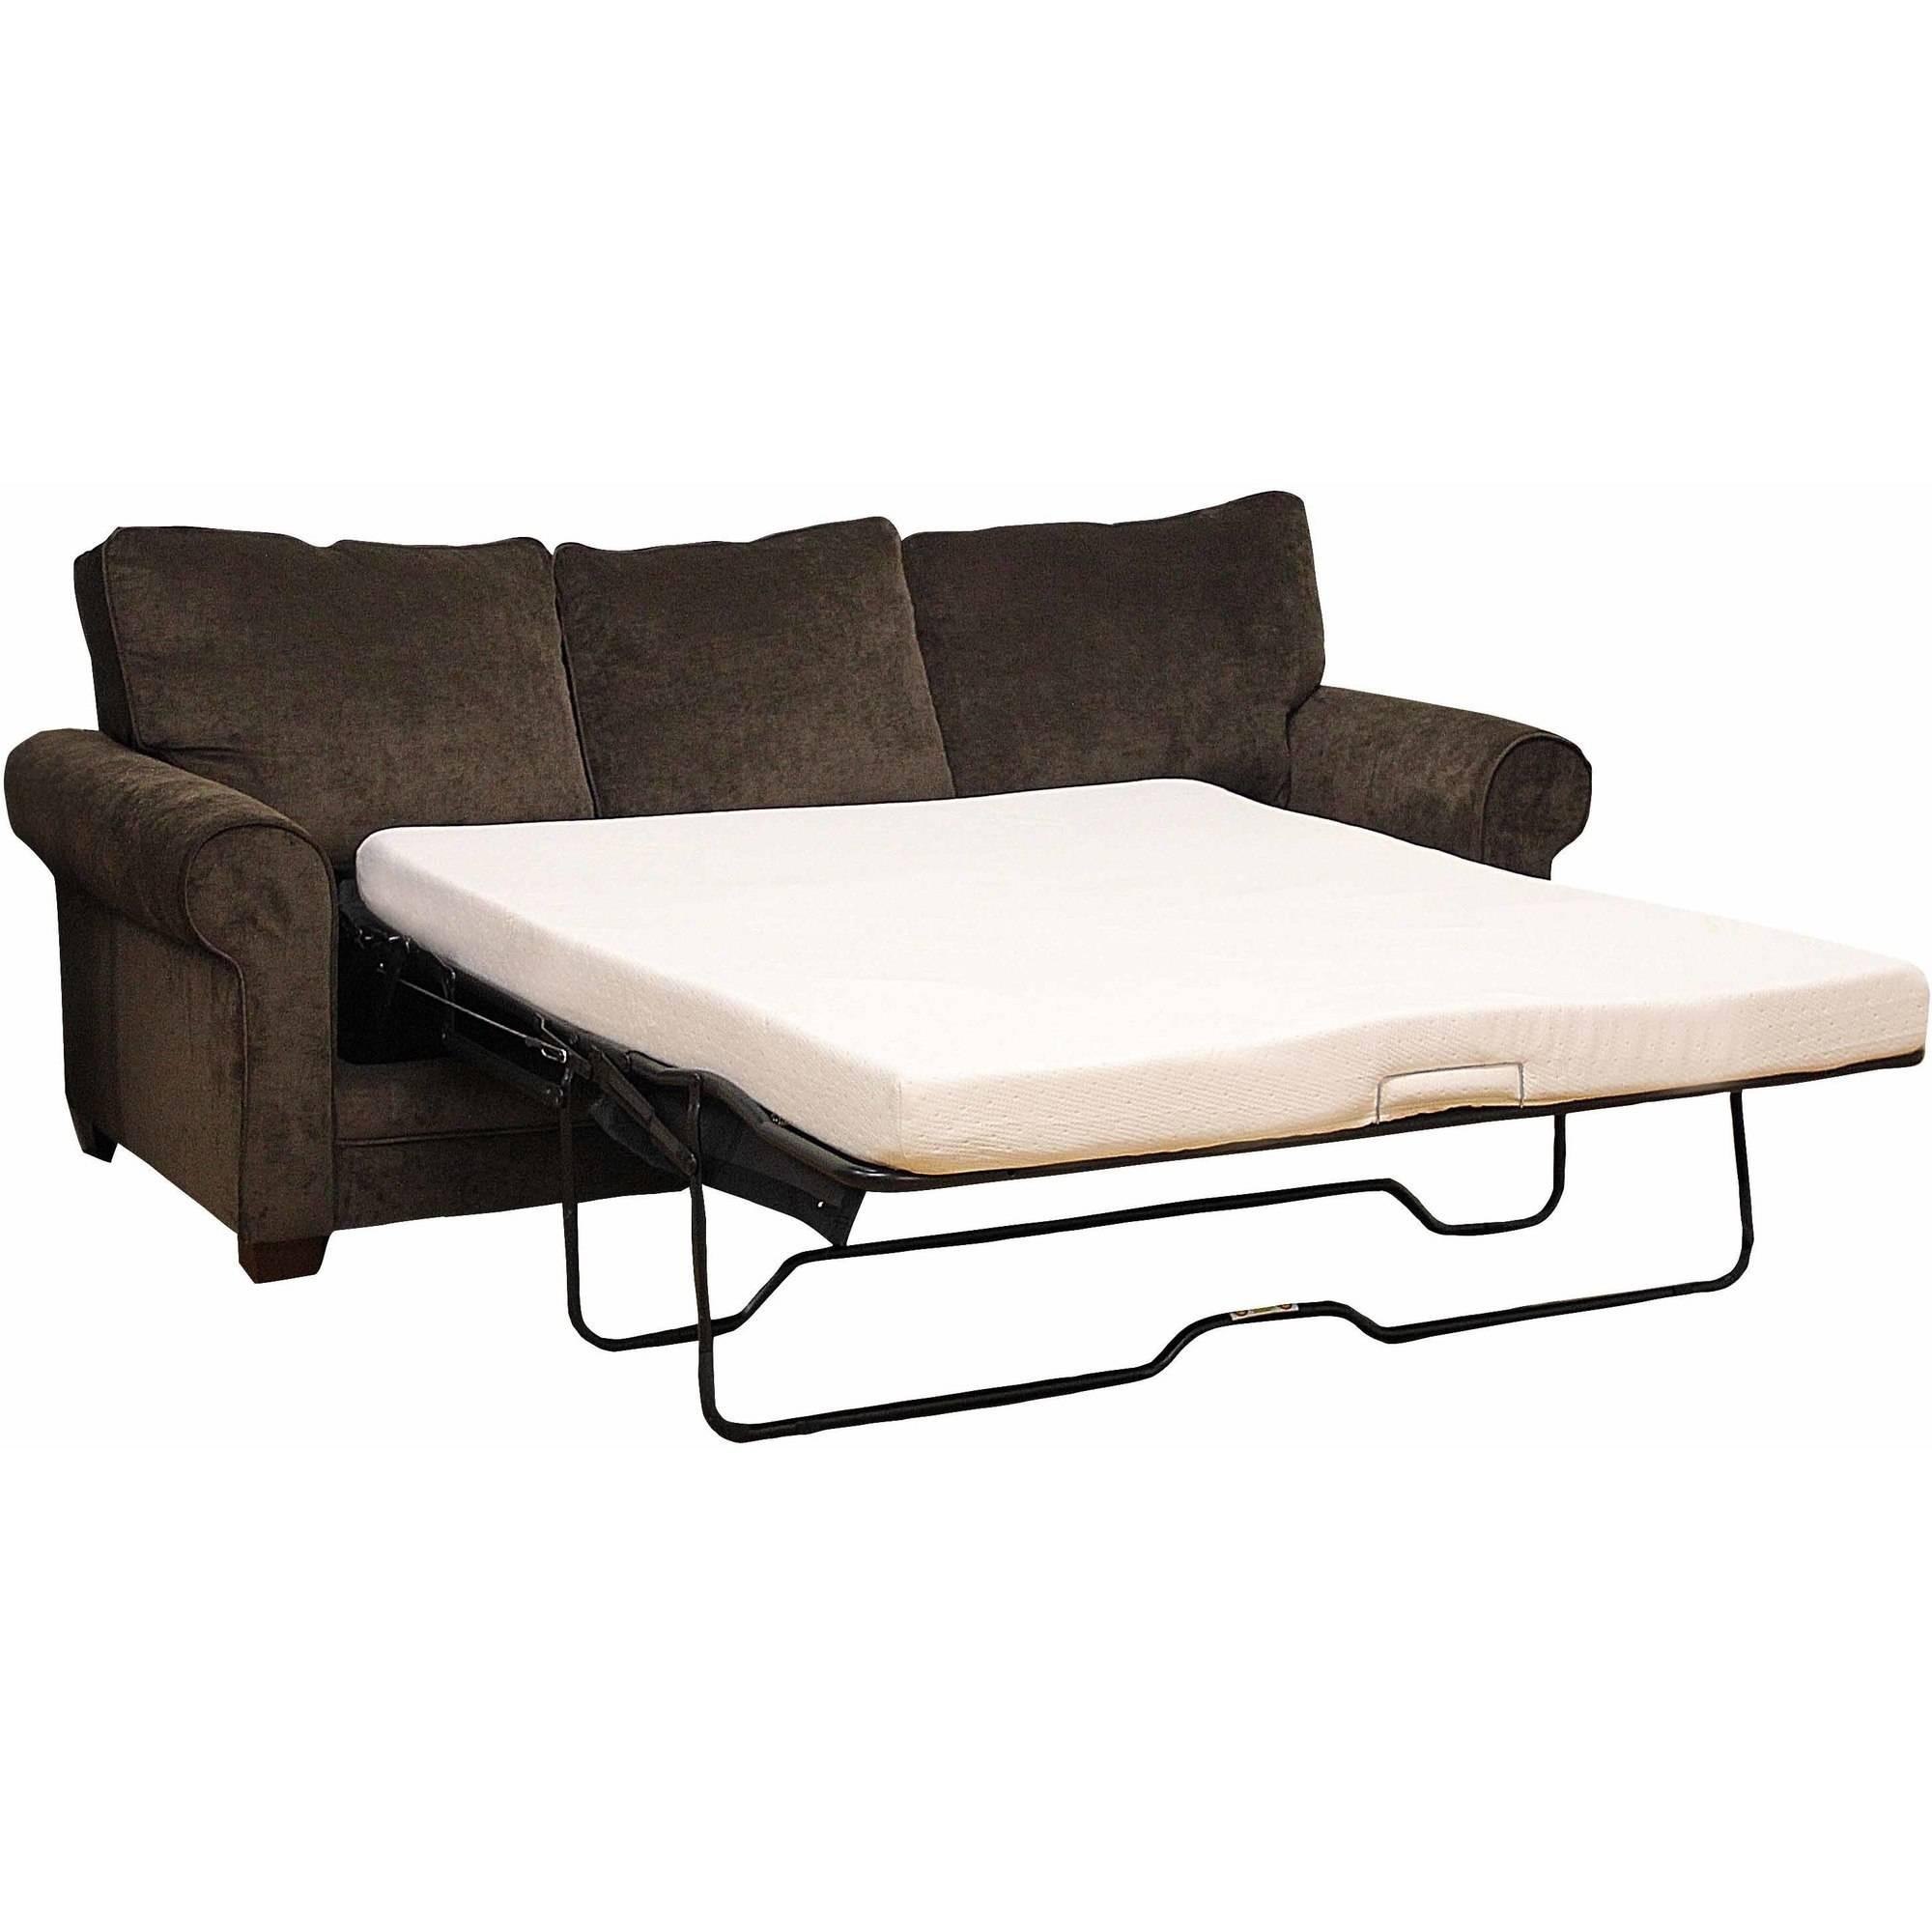 Featured Image of Sleep Number Sofa Beds